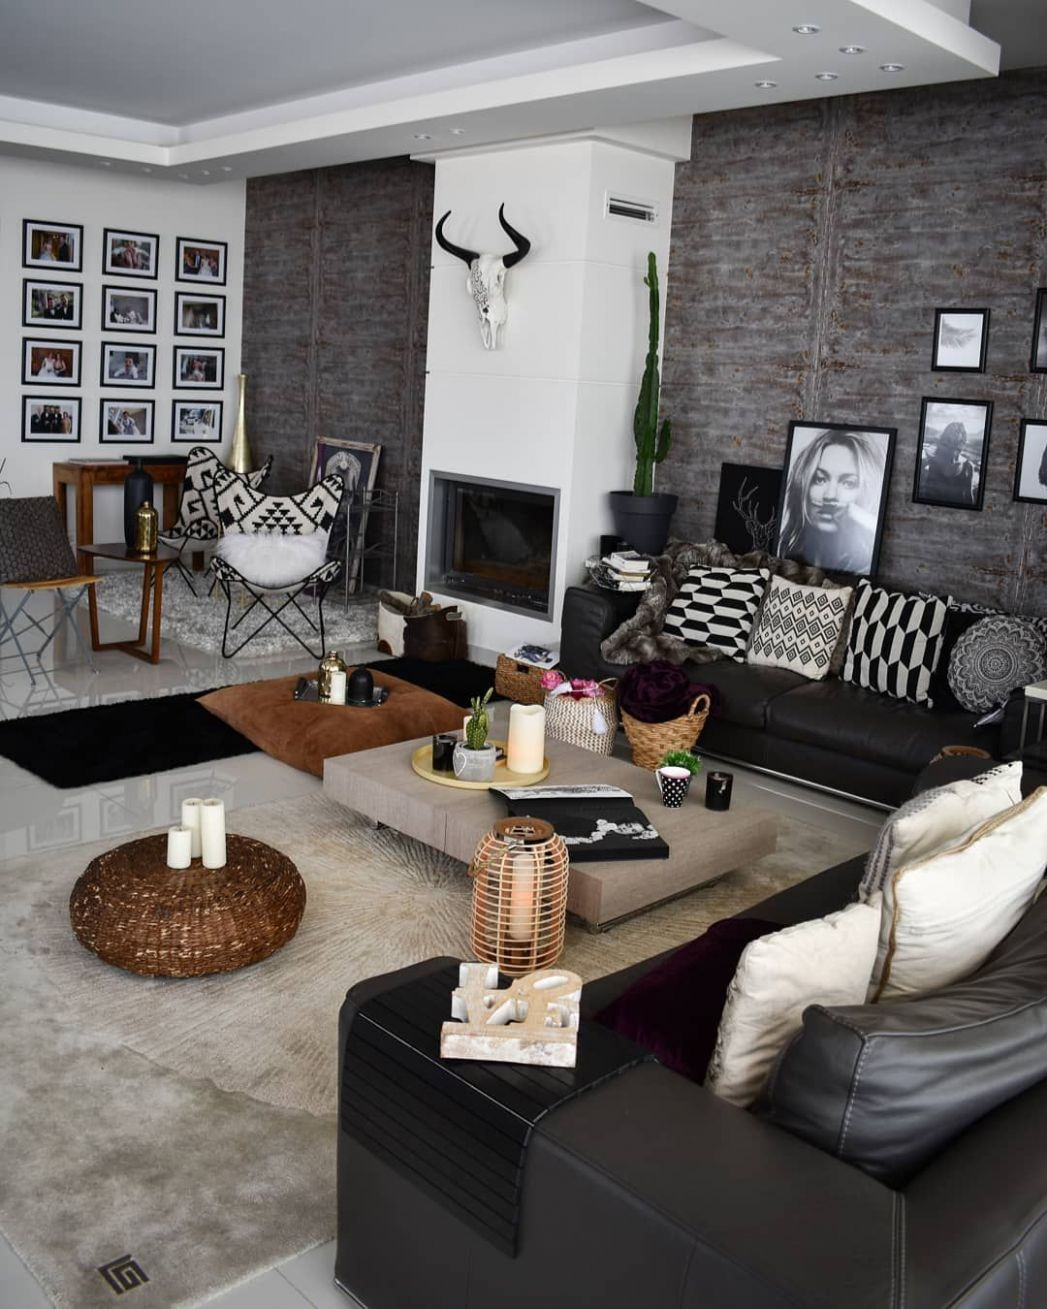 Apartment Decor For Young Professionals - Page 9 of 9 | Interior ...